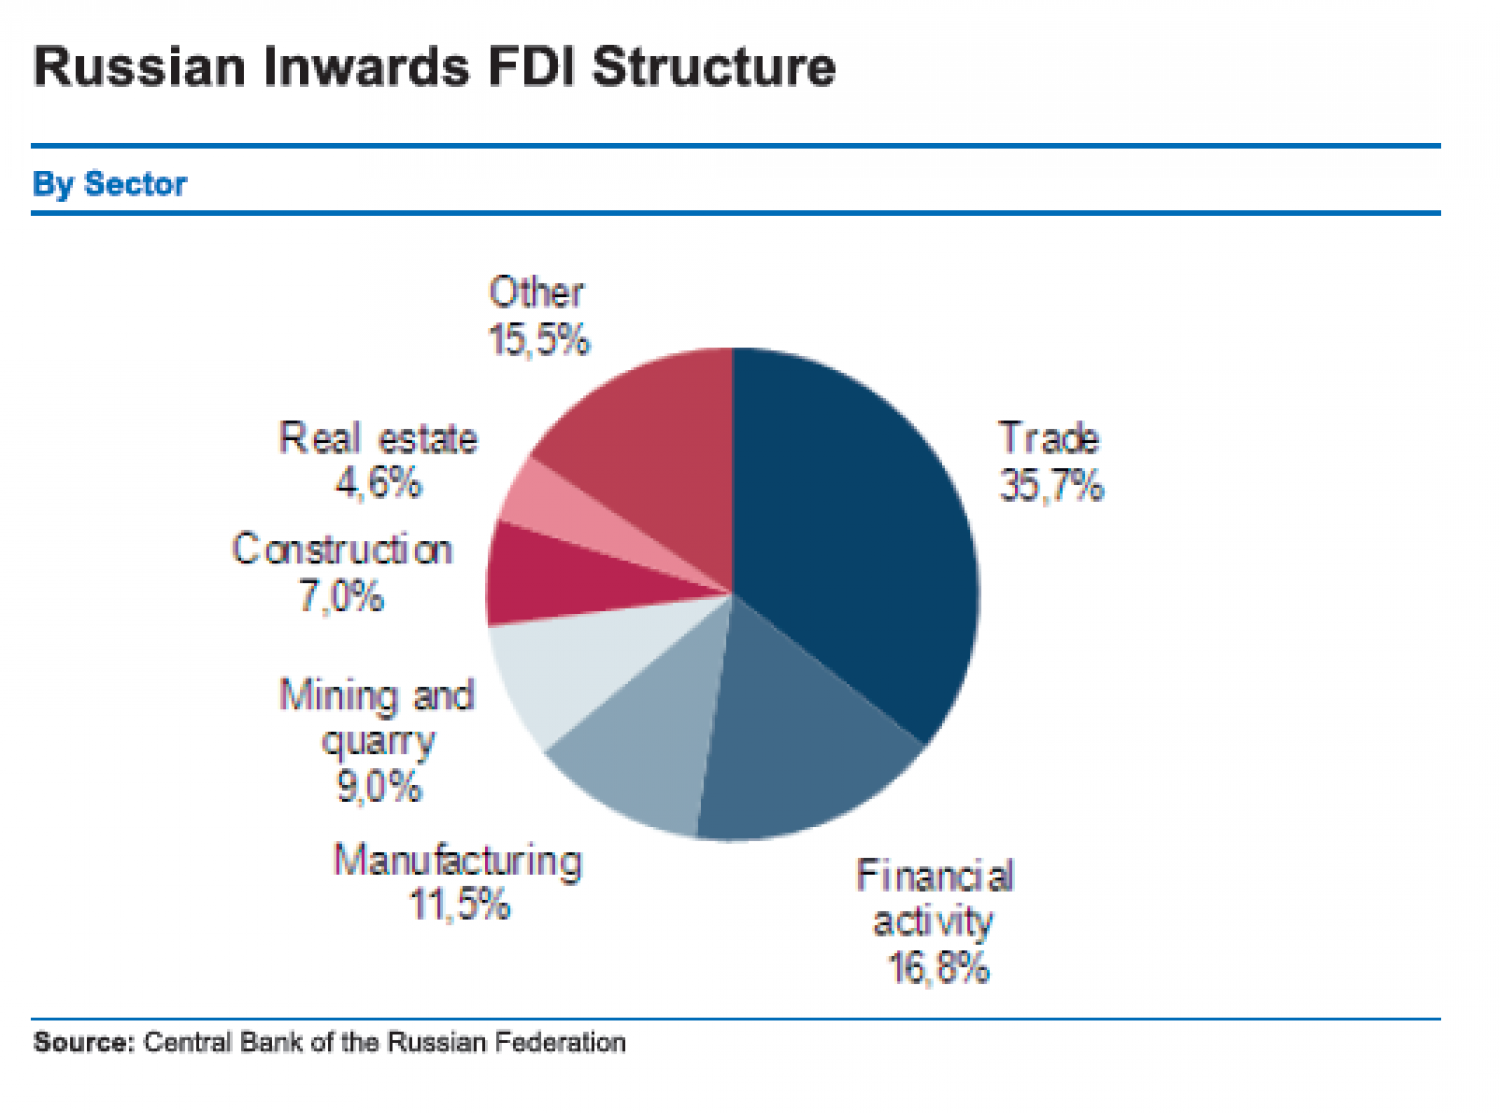 Russian Inwards FDI Structure (By Sector) Infographic